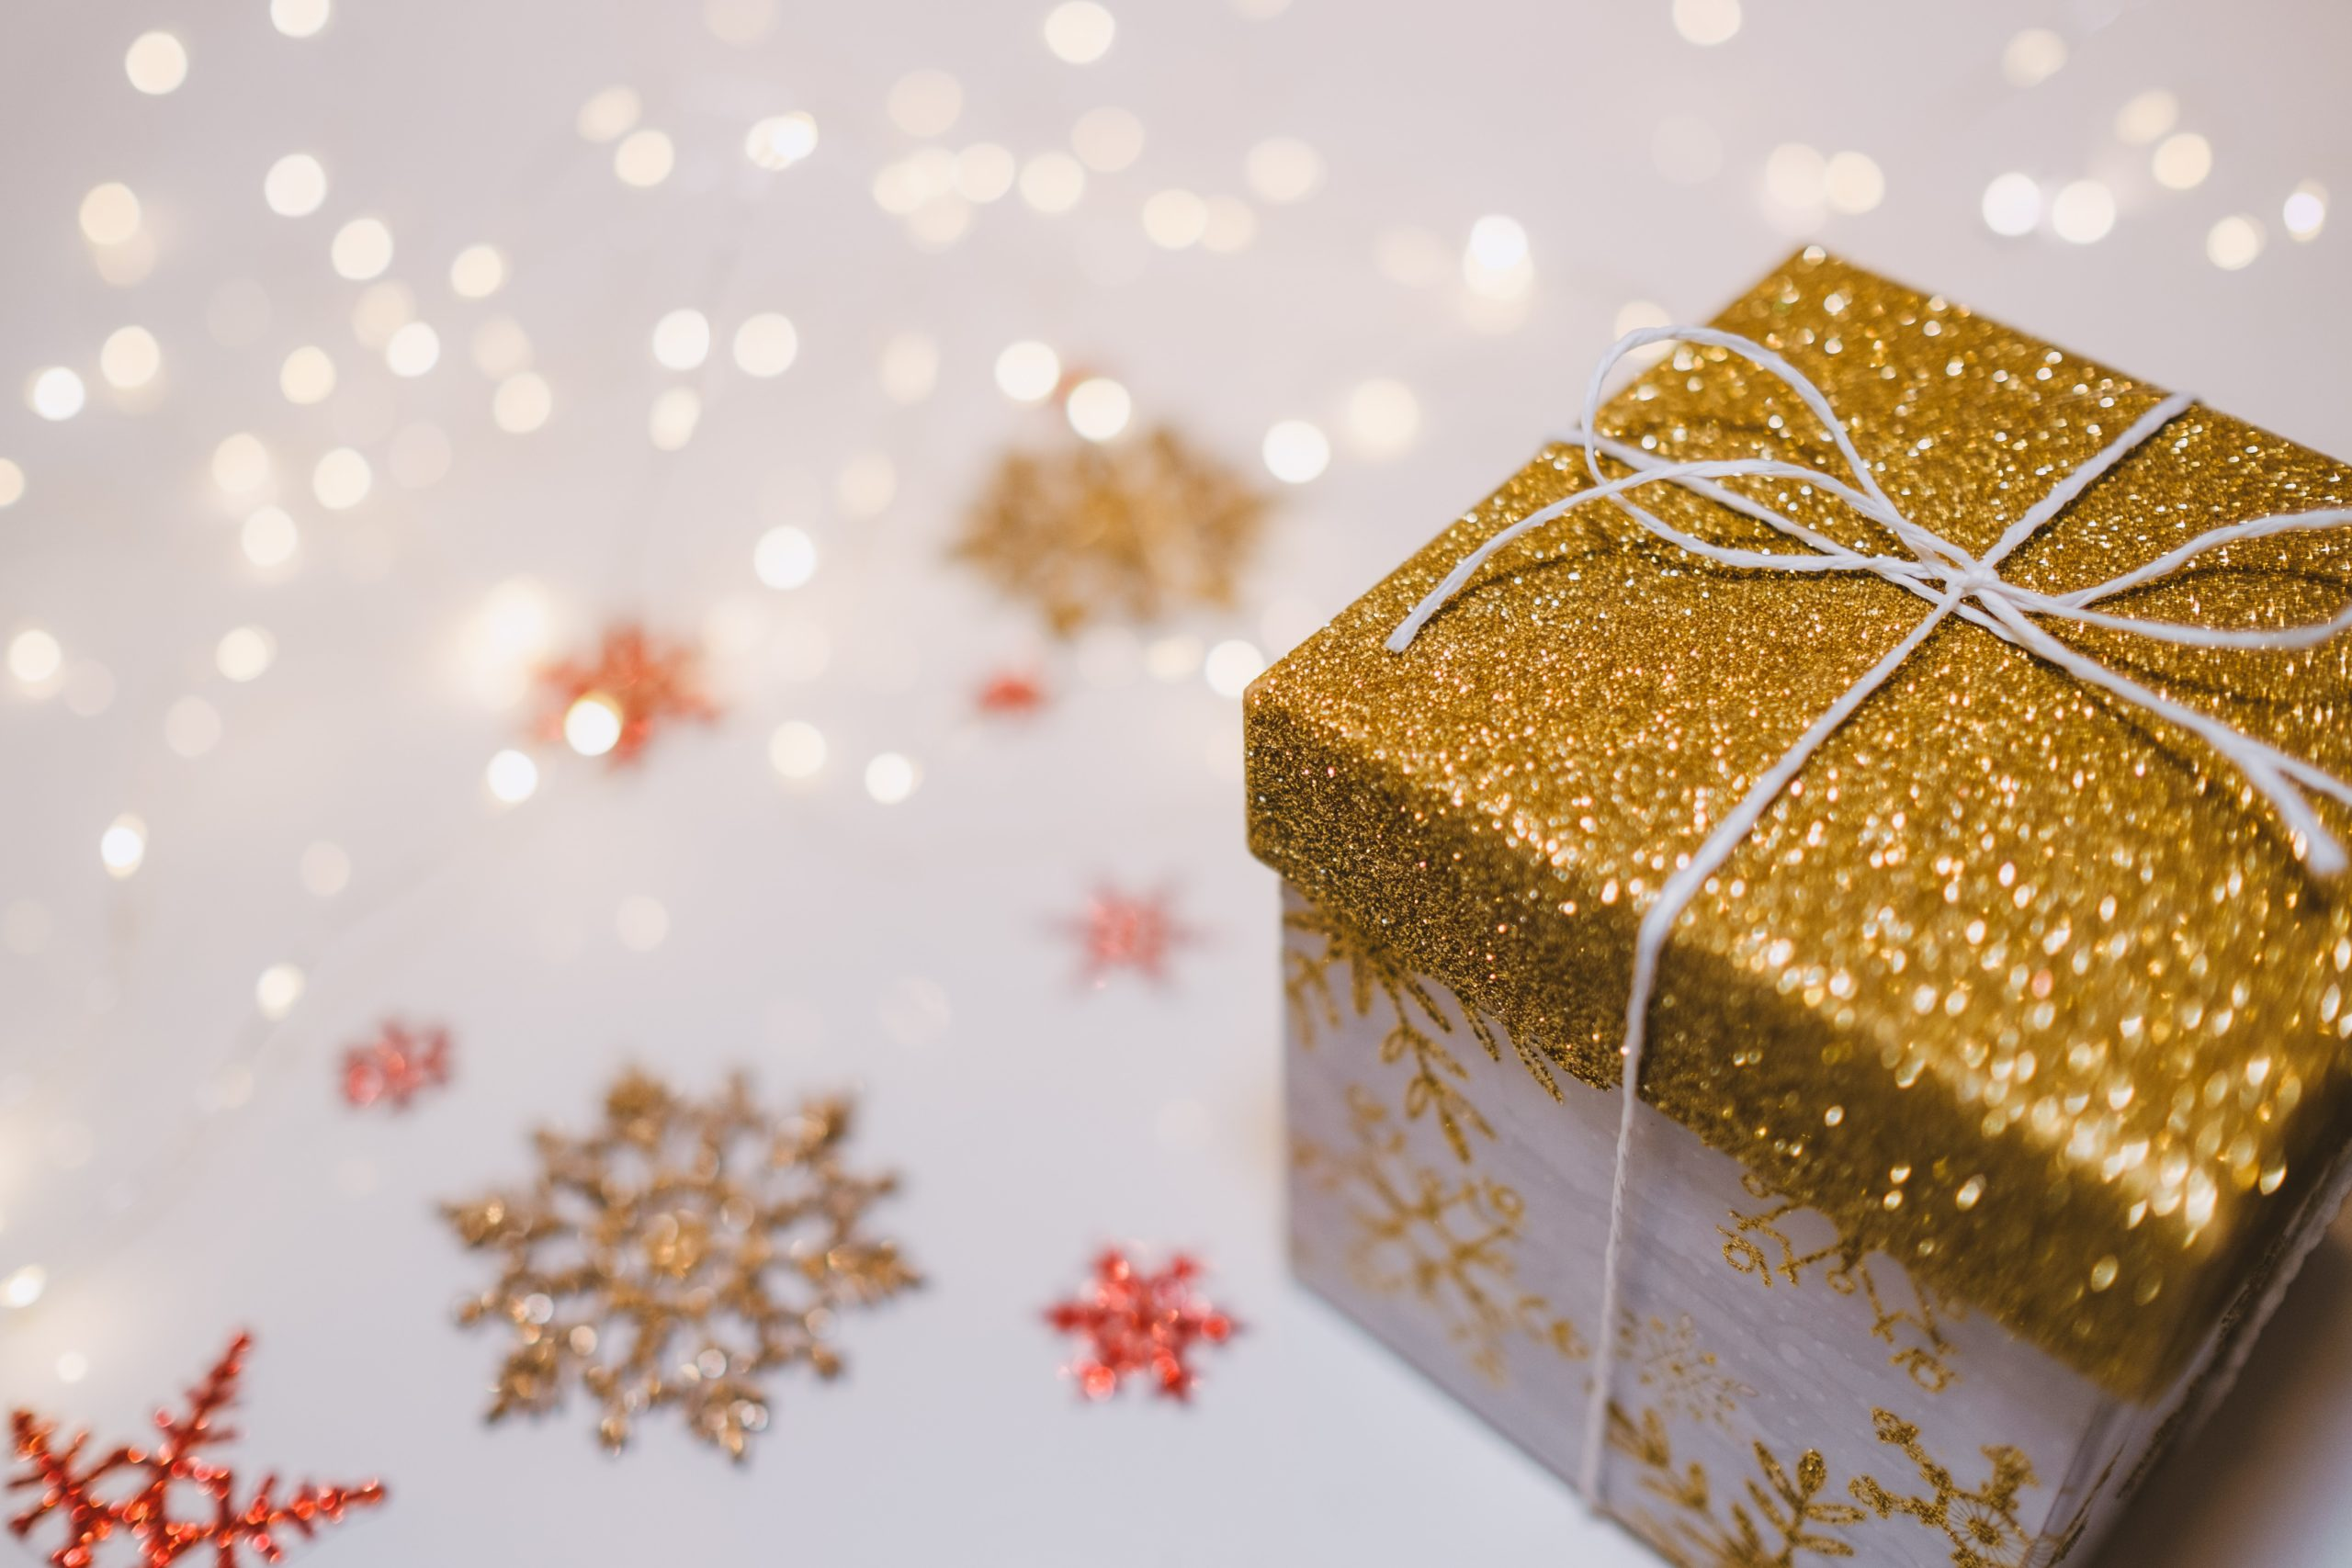 Holidays in 2020: 5 Ideas to Foster Virtual Team Cheer